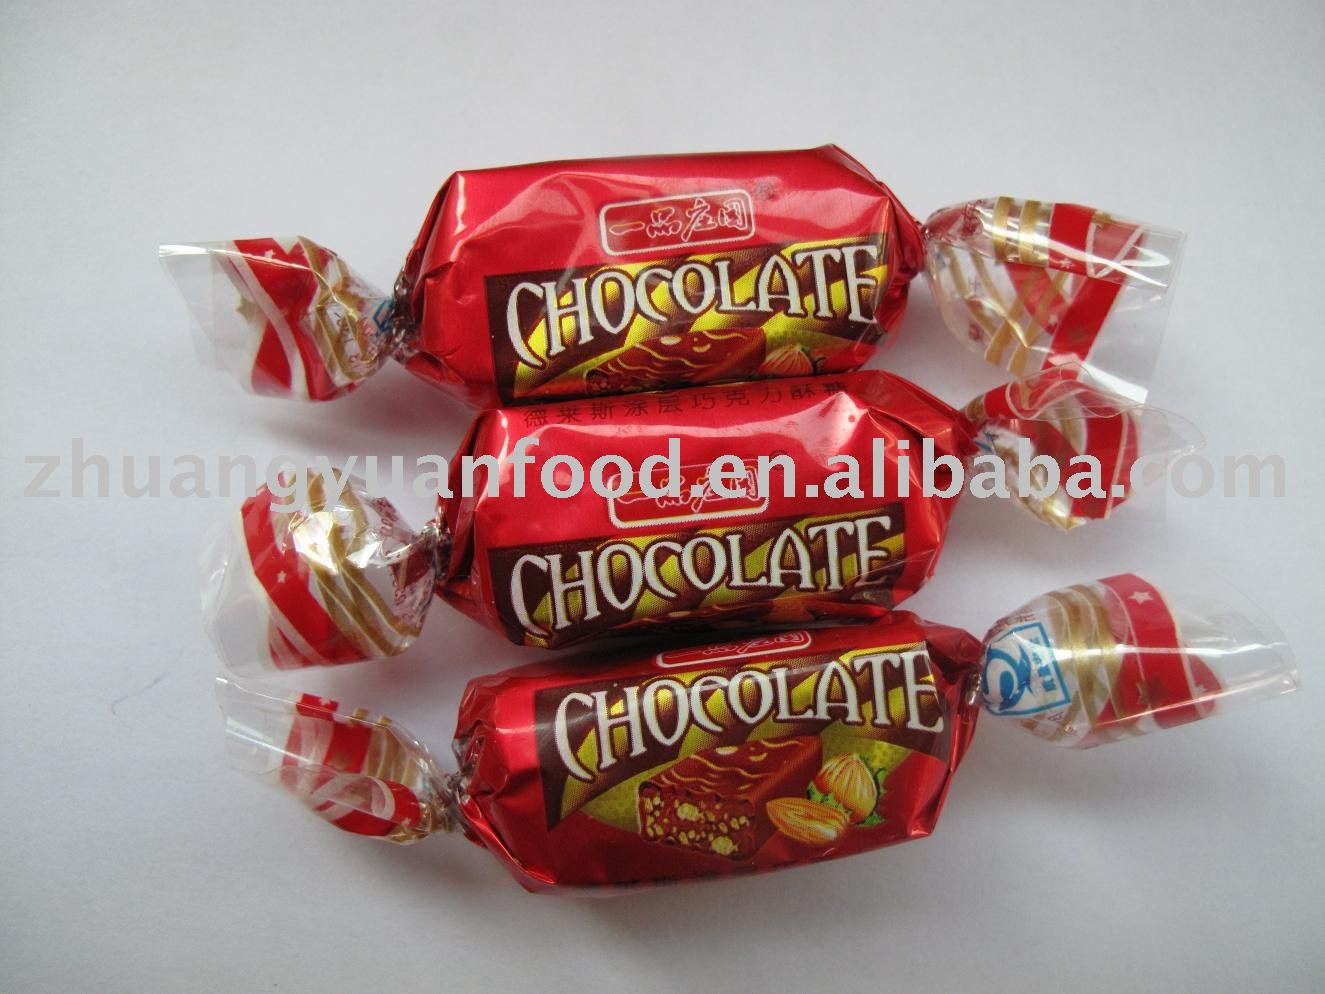 Chocolate and crunchy candy